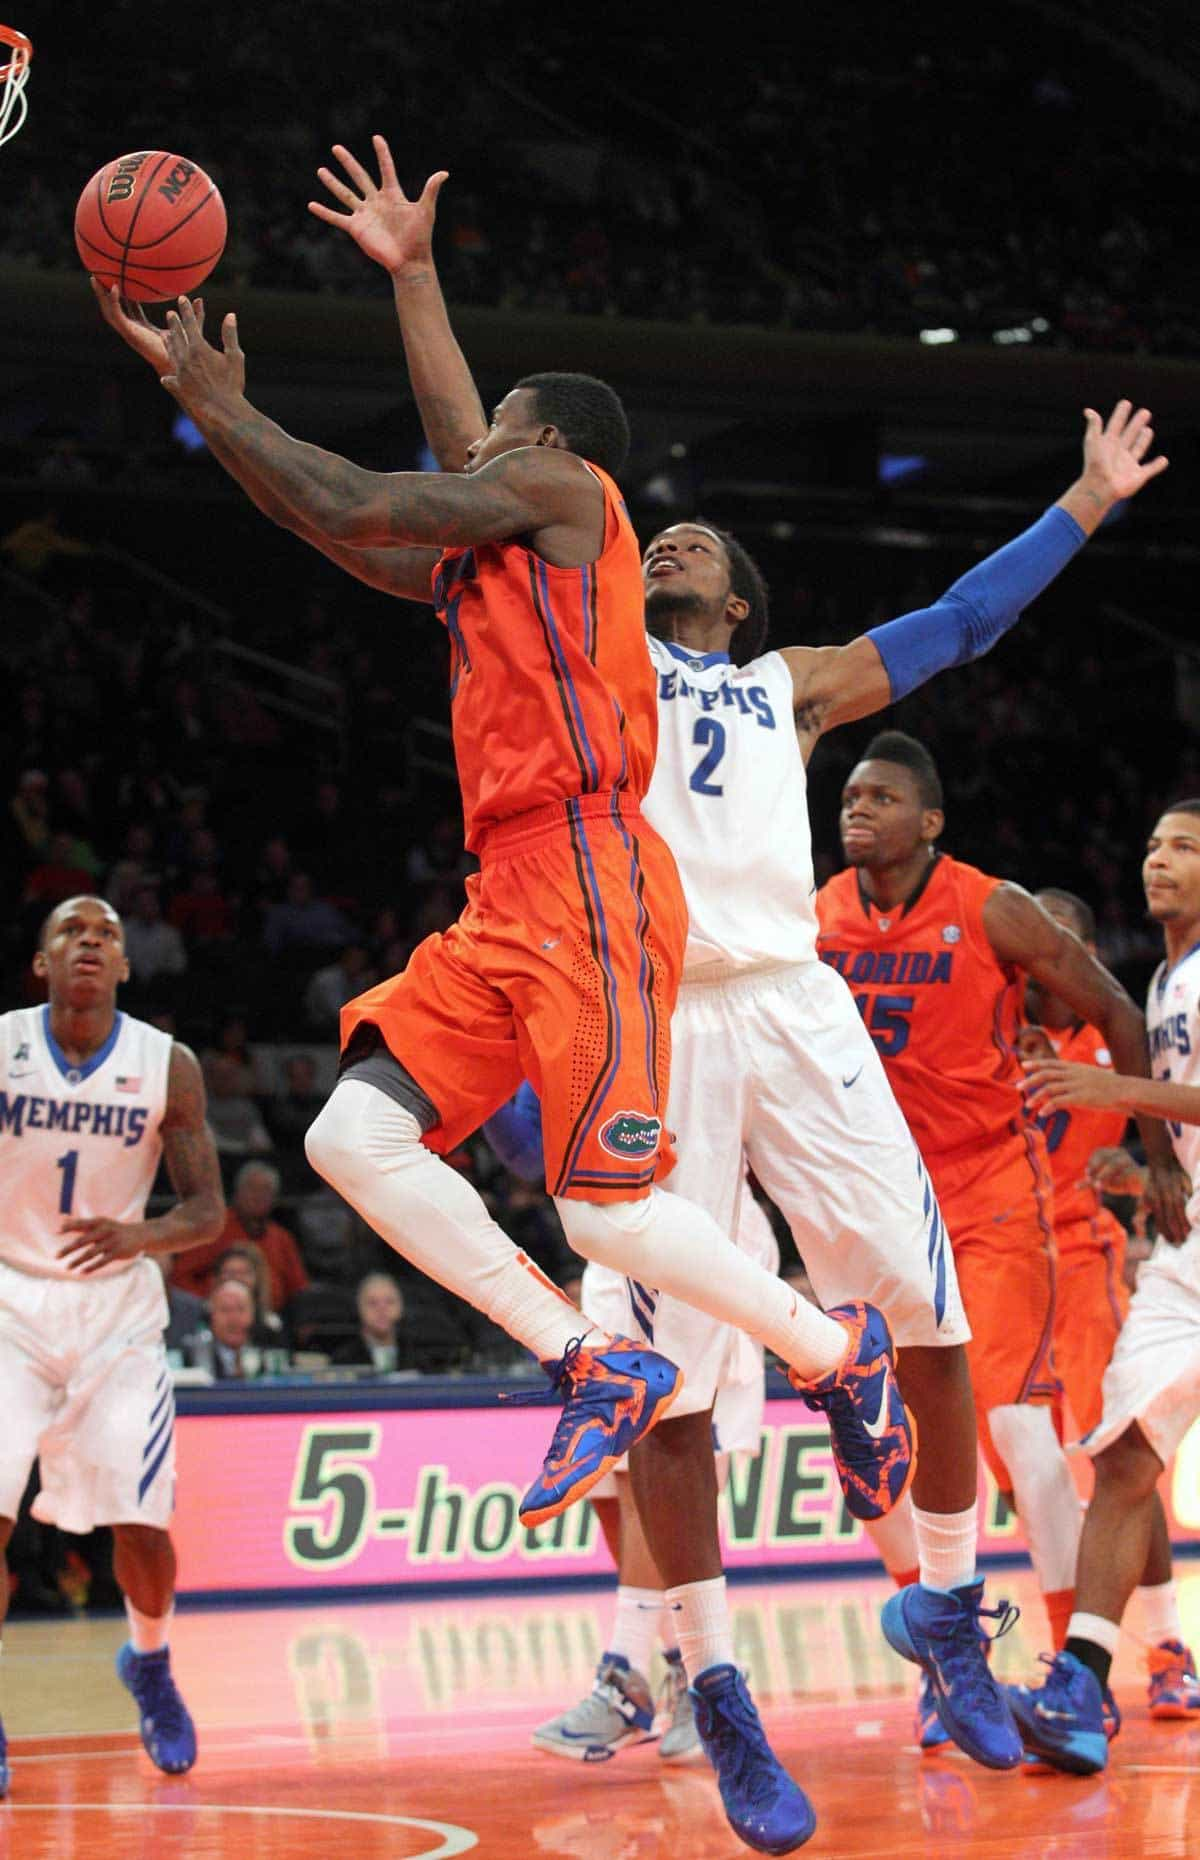 Florida's leading scorer Casey Prather has been cleared to practice and play again / Photo: Brad Penner-USA TODAY Sports